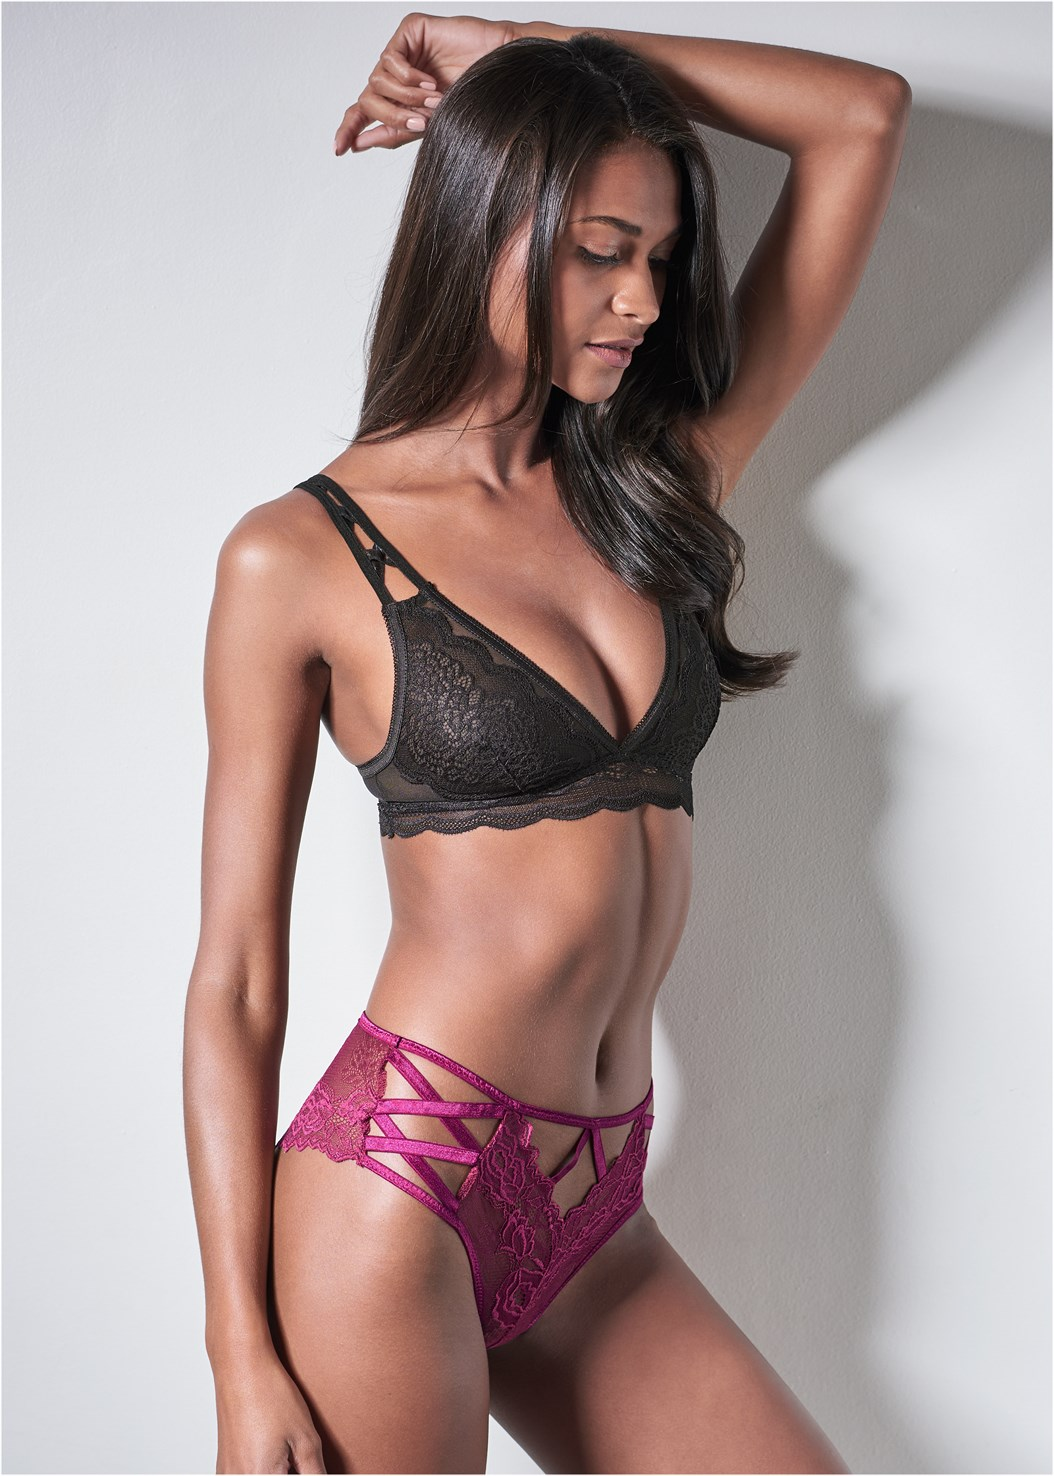 Strappy Detail Lace Panty,Lace And Mesh Bralette,Sheer Floral Robe